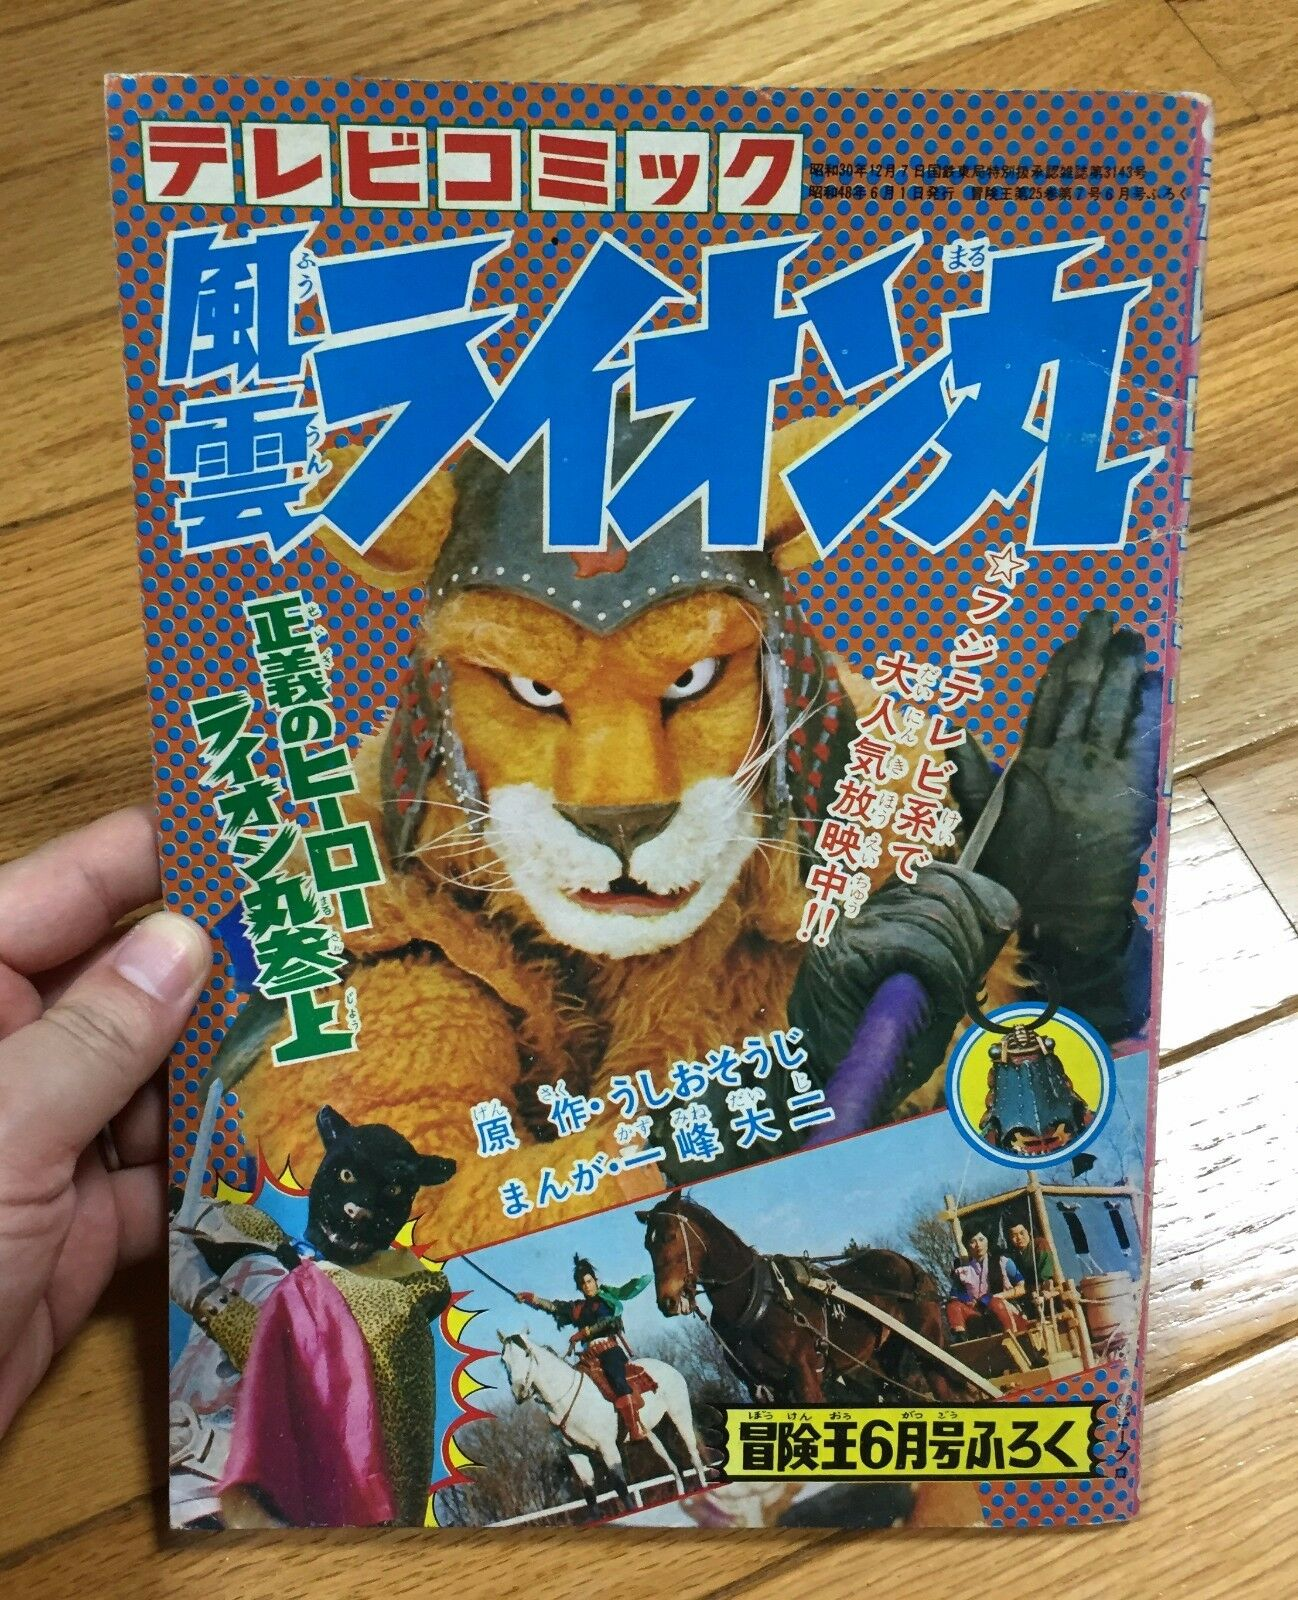 JAPANESE TV MOVIE FUUN LION MARU VINTAGE BOUKEN OH COMIC